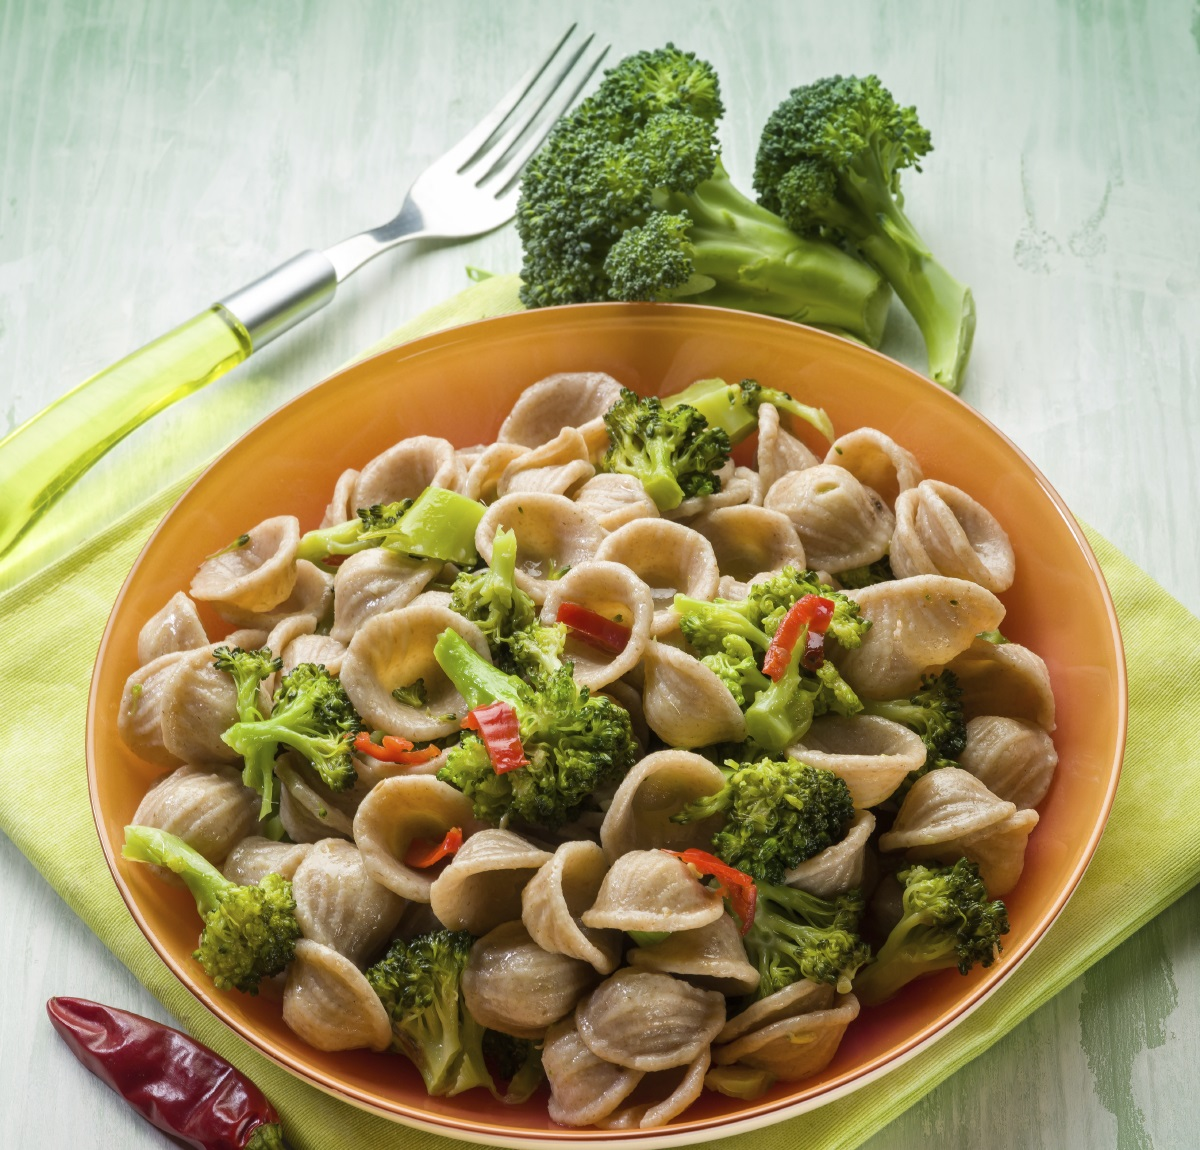 Spicy Orecchiette with Broccoli and Beans